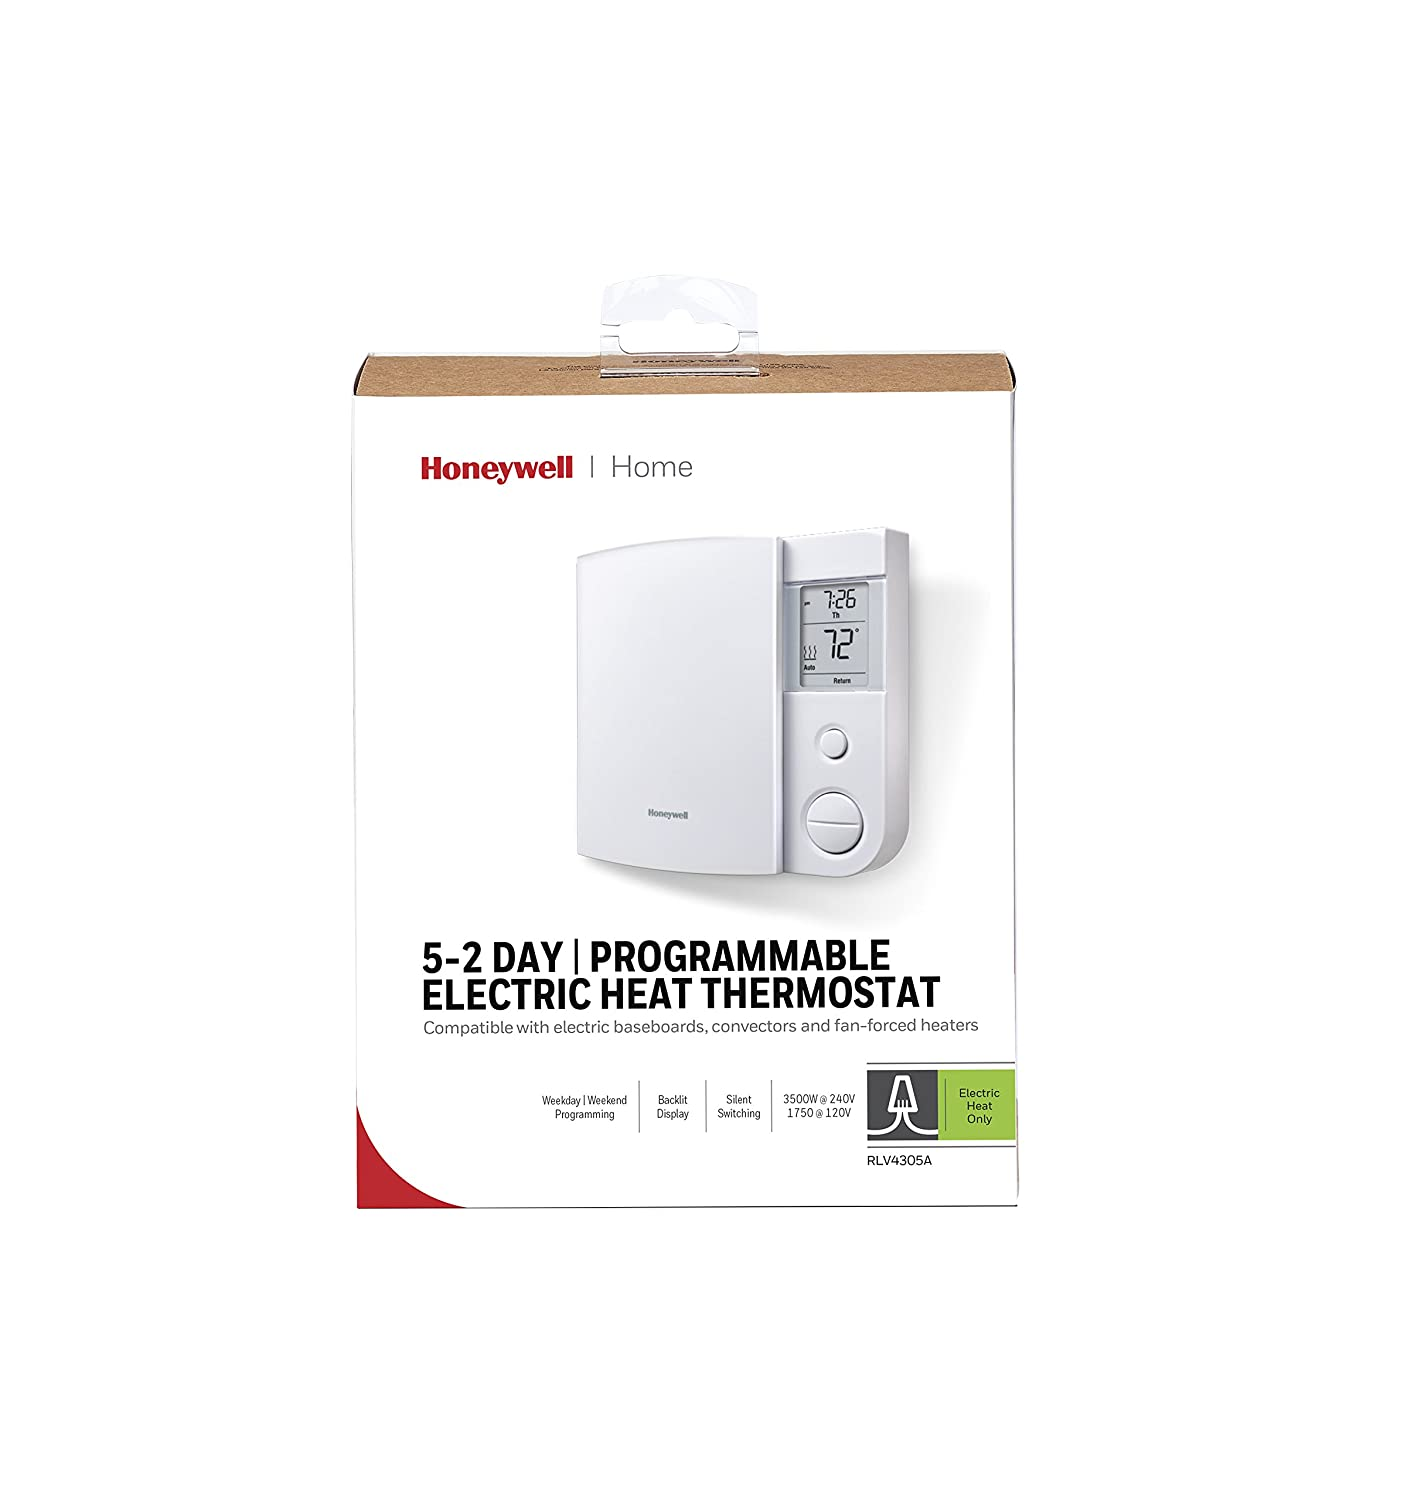 Honeywell Rlv4305a1000 E1 E 5 2 Day Programmable Wiring Electric Baseboard Heaters Thermostat 240 V 1 Deg F Household Thermostats